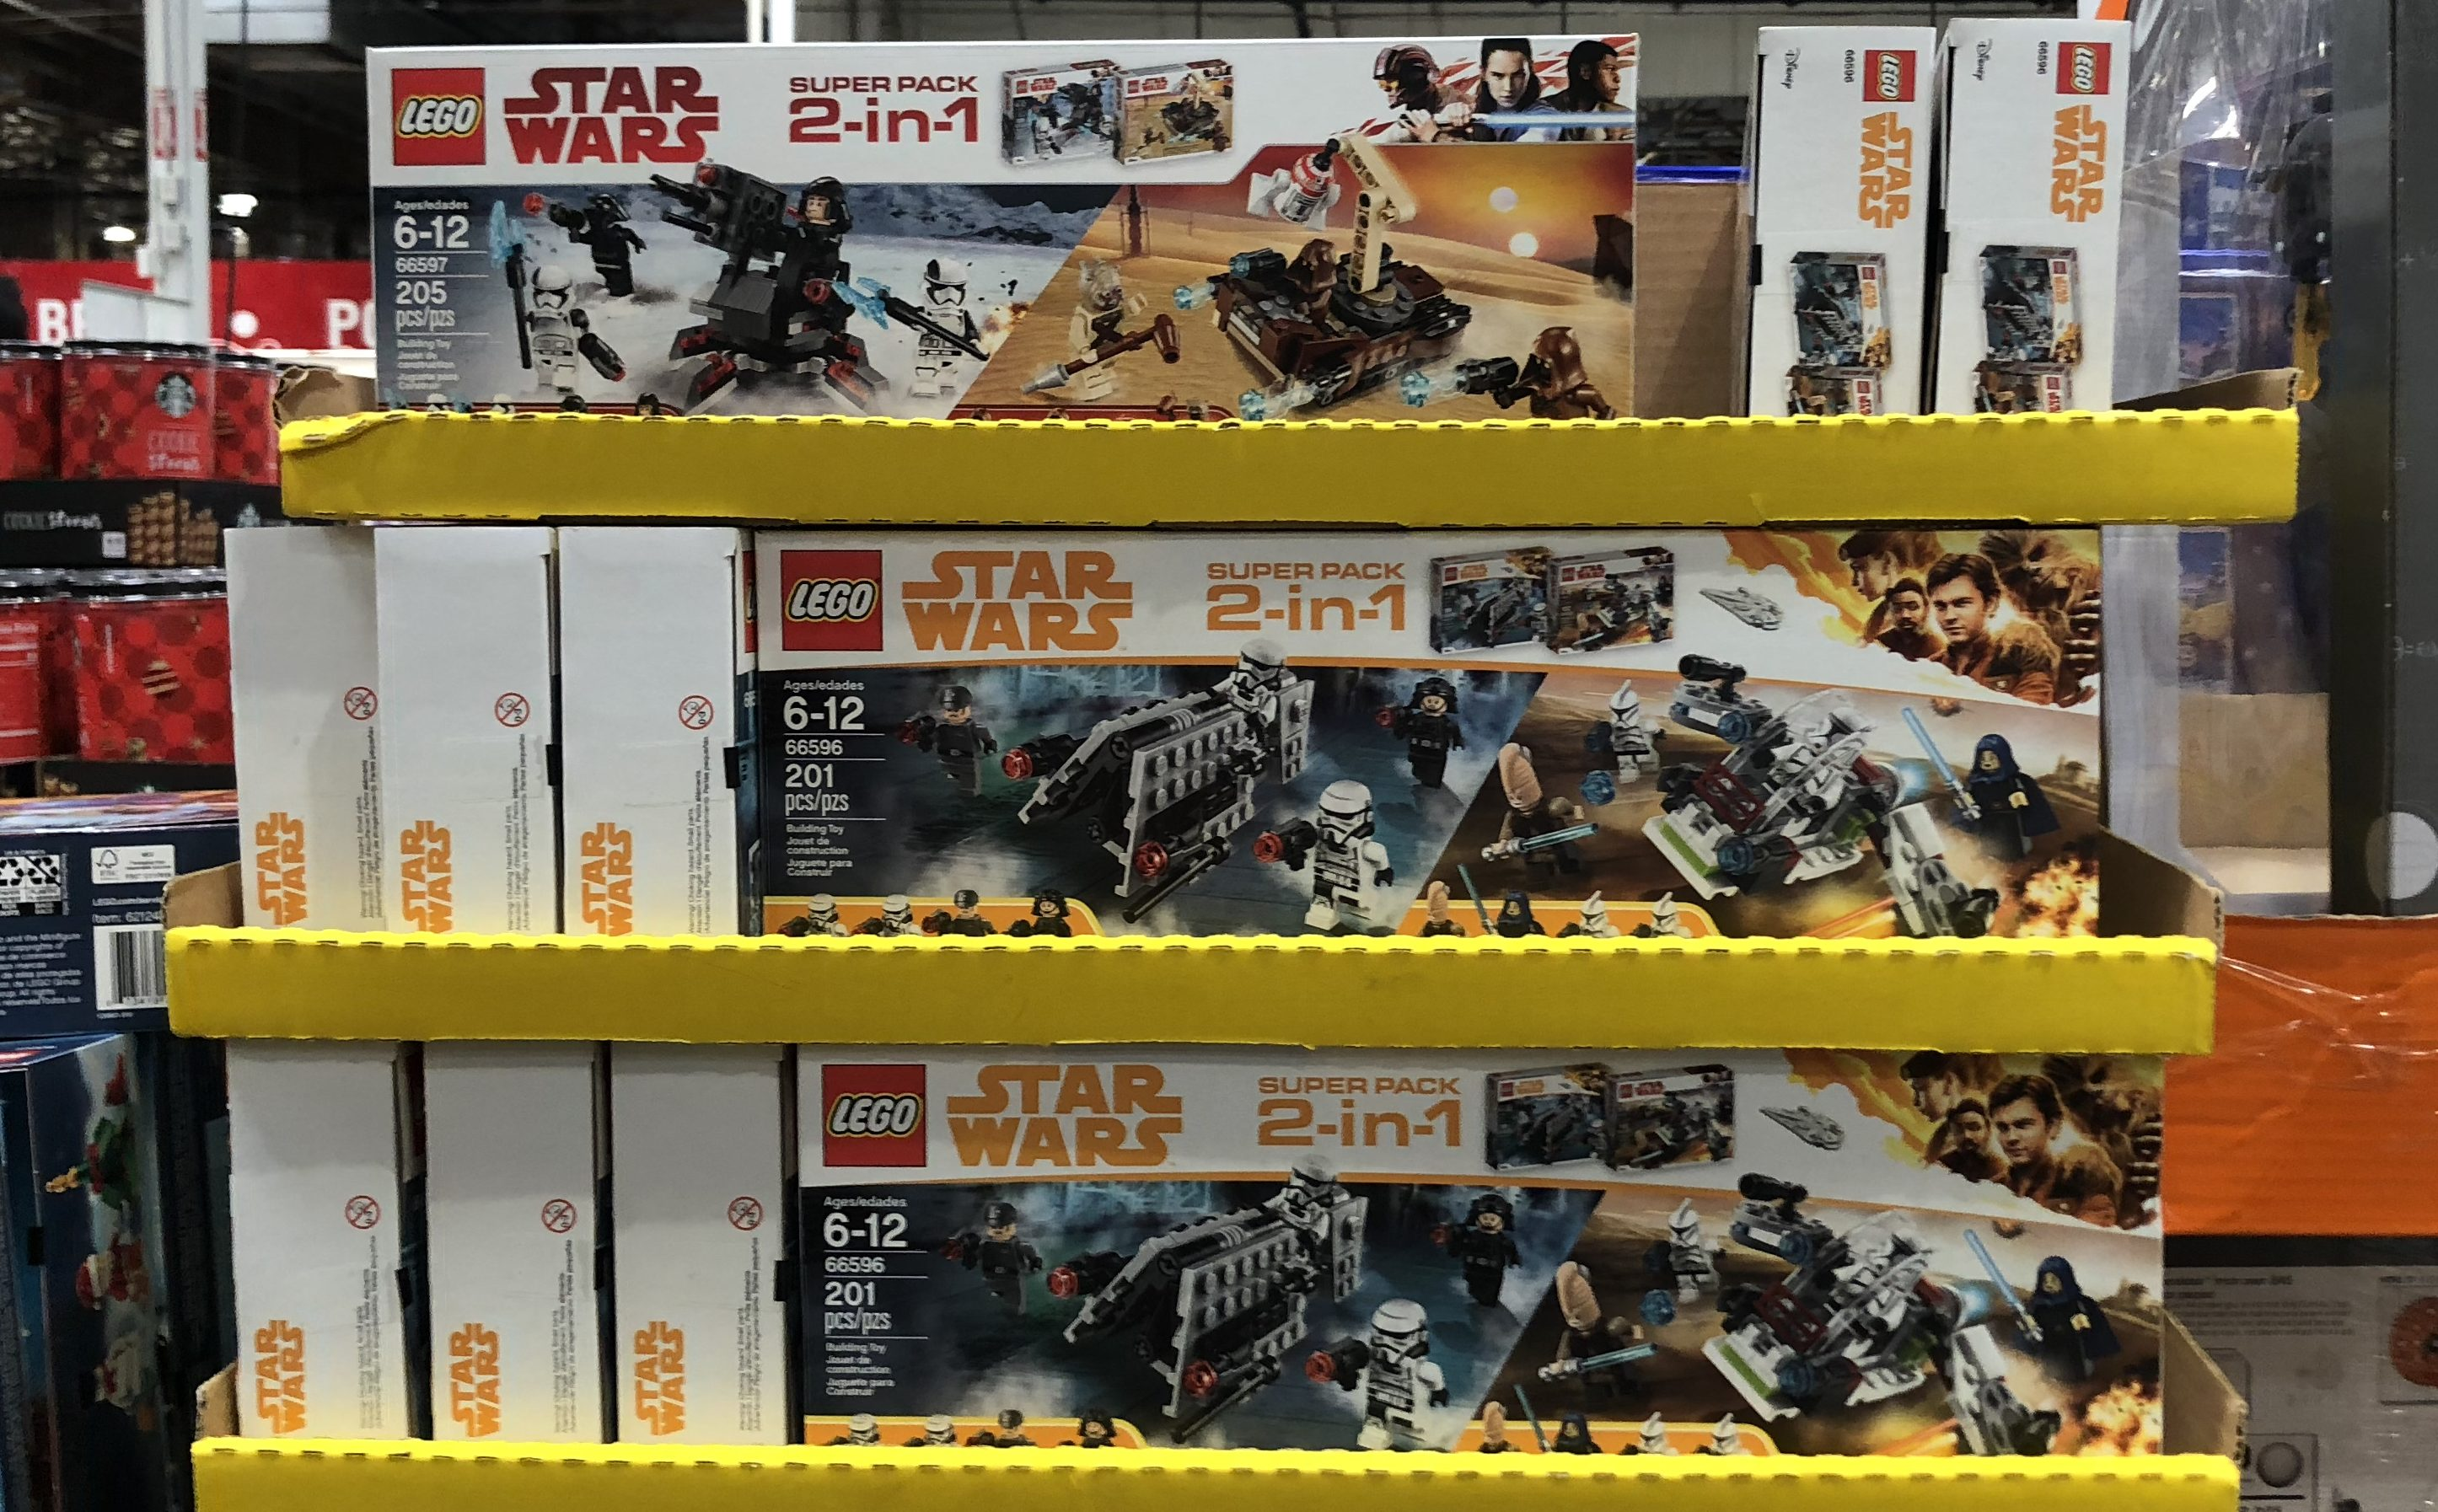 The best holiday toy deals for 2018 include LEGO Super Packs 2-in-1 at Costco